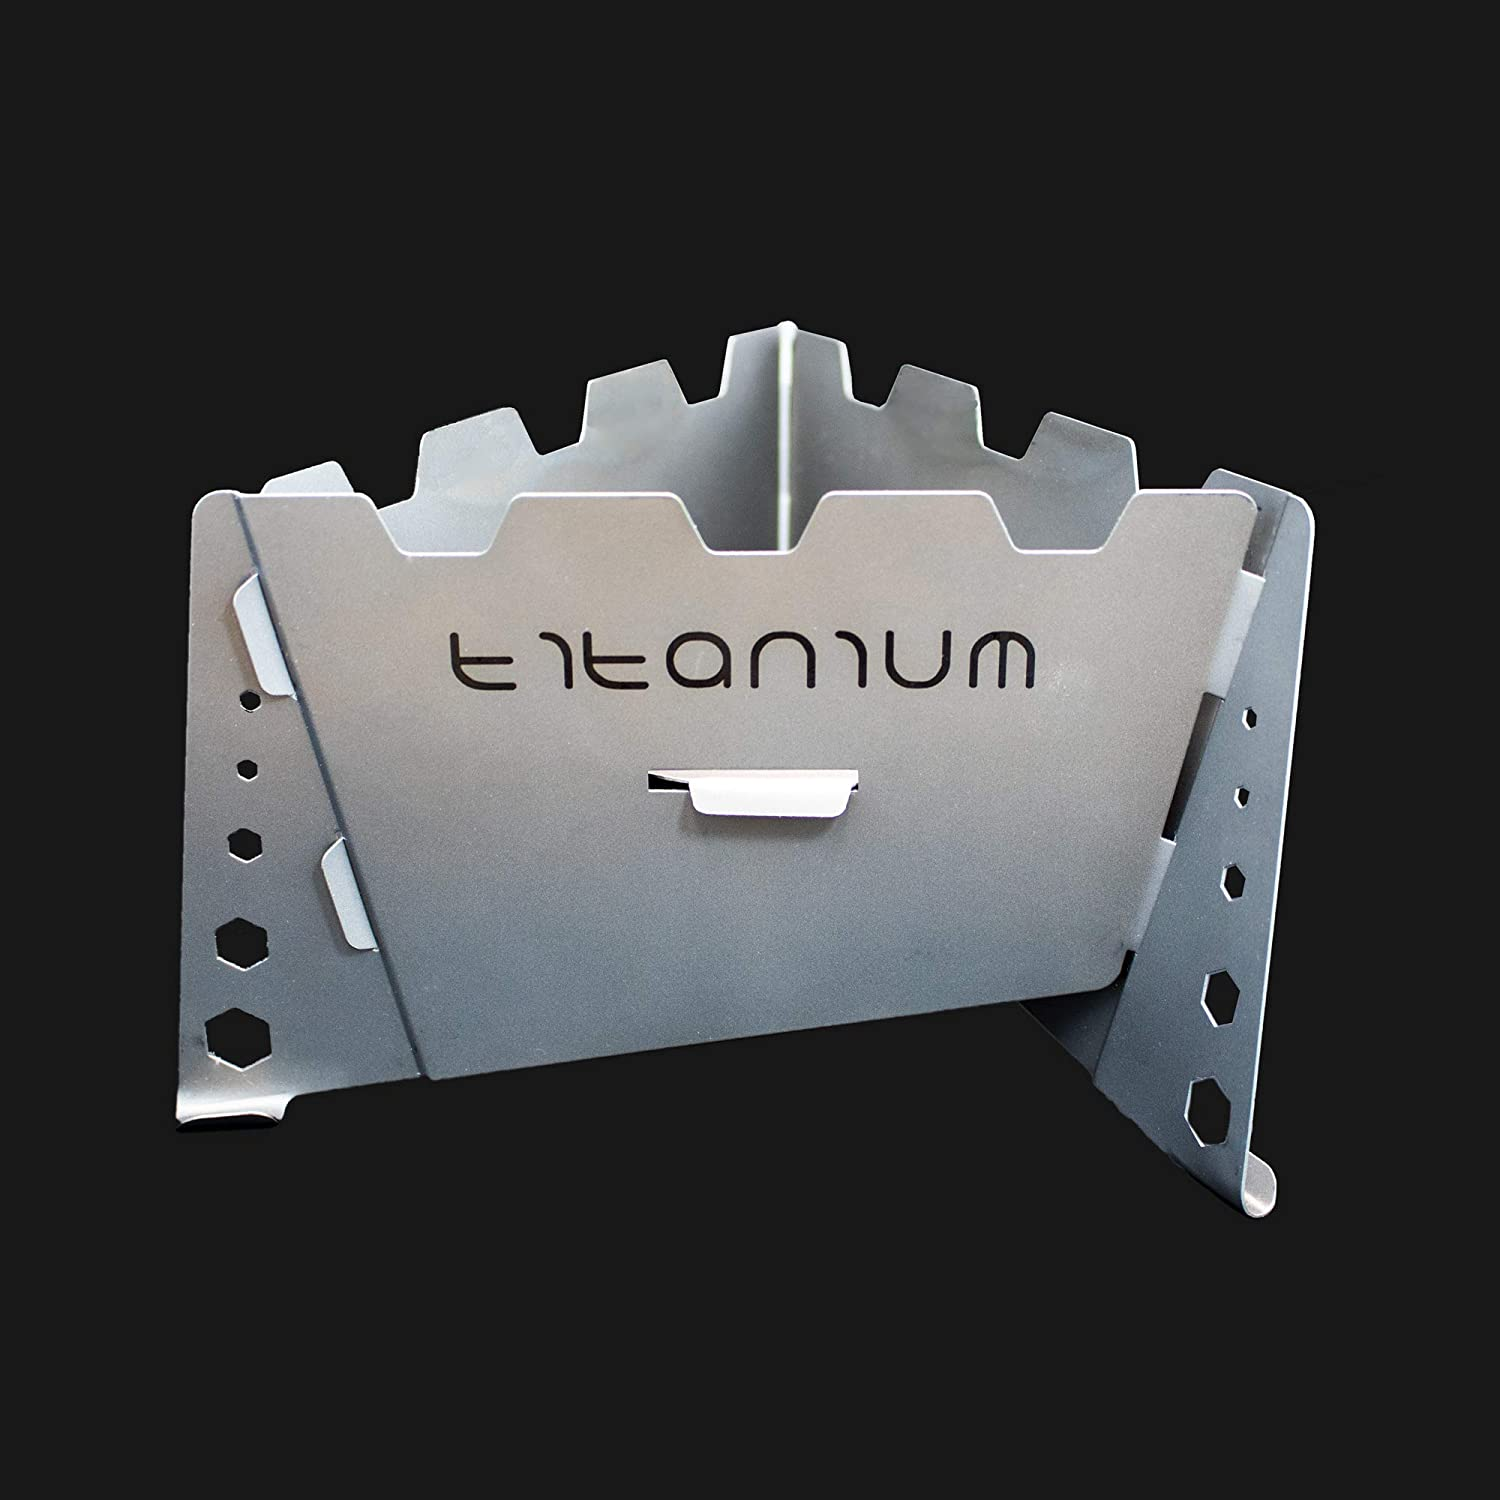 Expedition Research LLC Titanium Solid Fuel Stove – Integrated Wind Shield